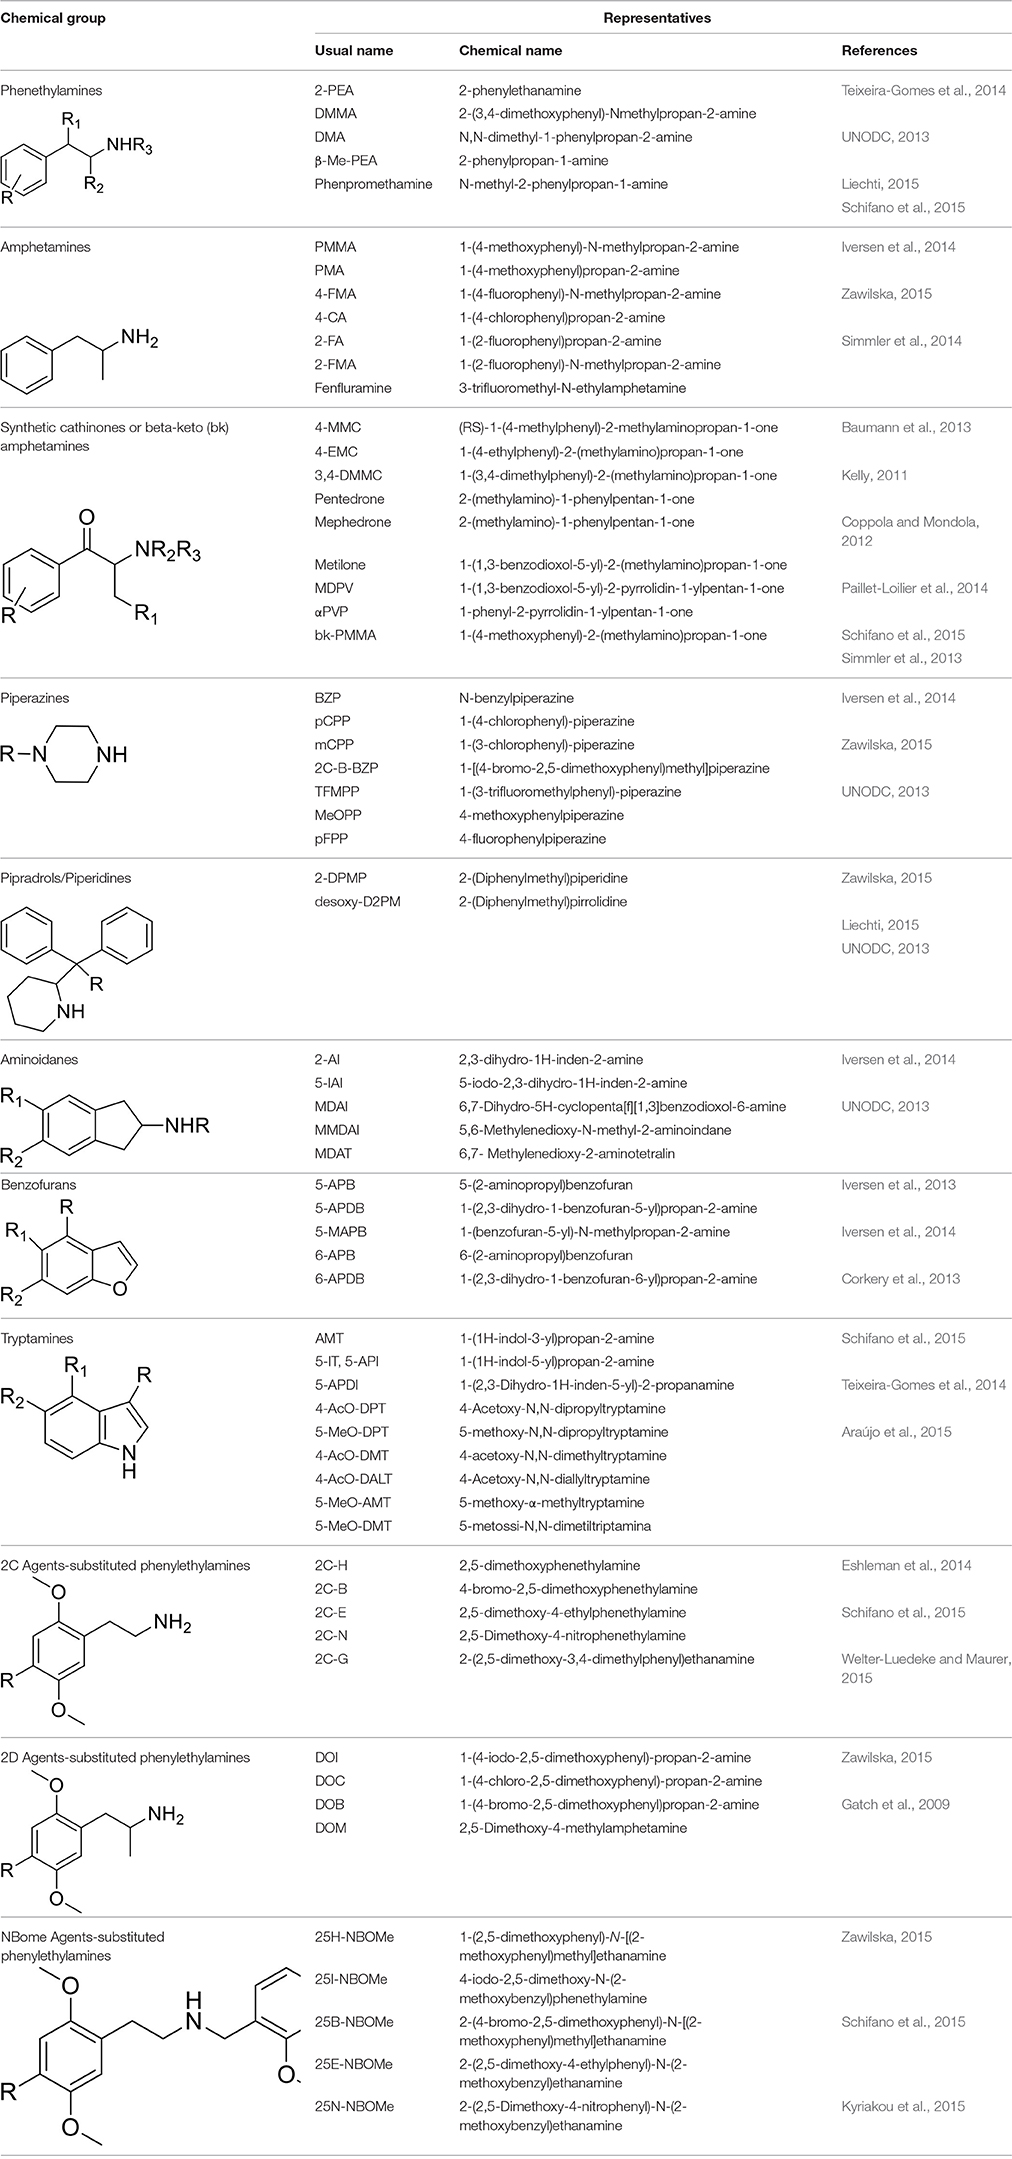 Frontiers | Neuropharmacology of New Psychoactive Substances